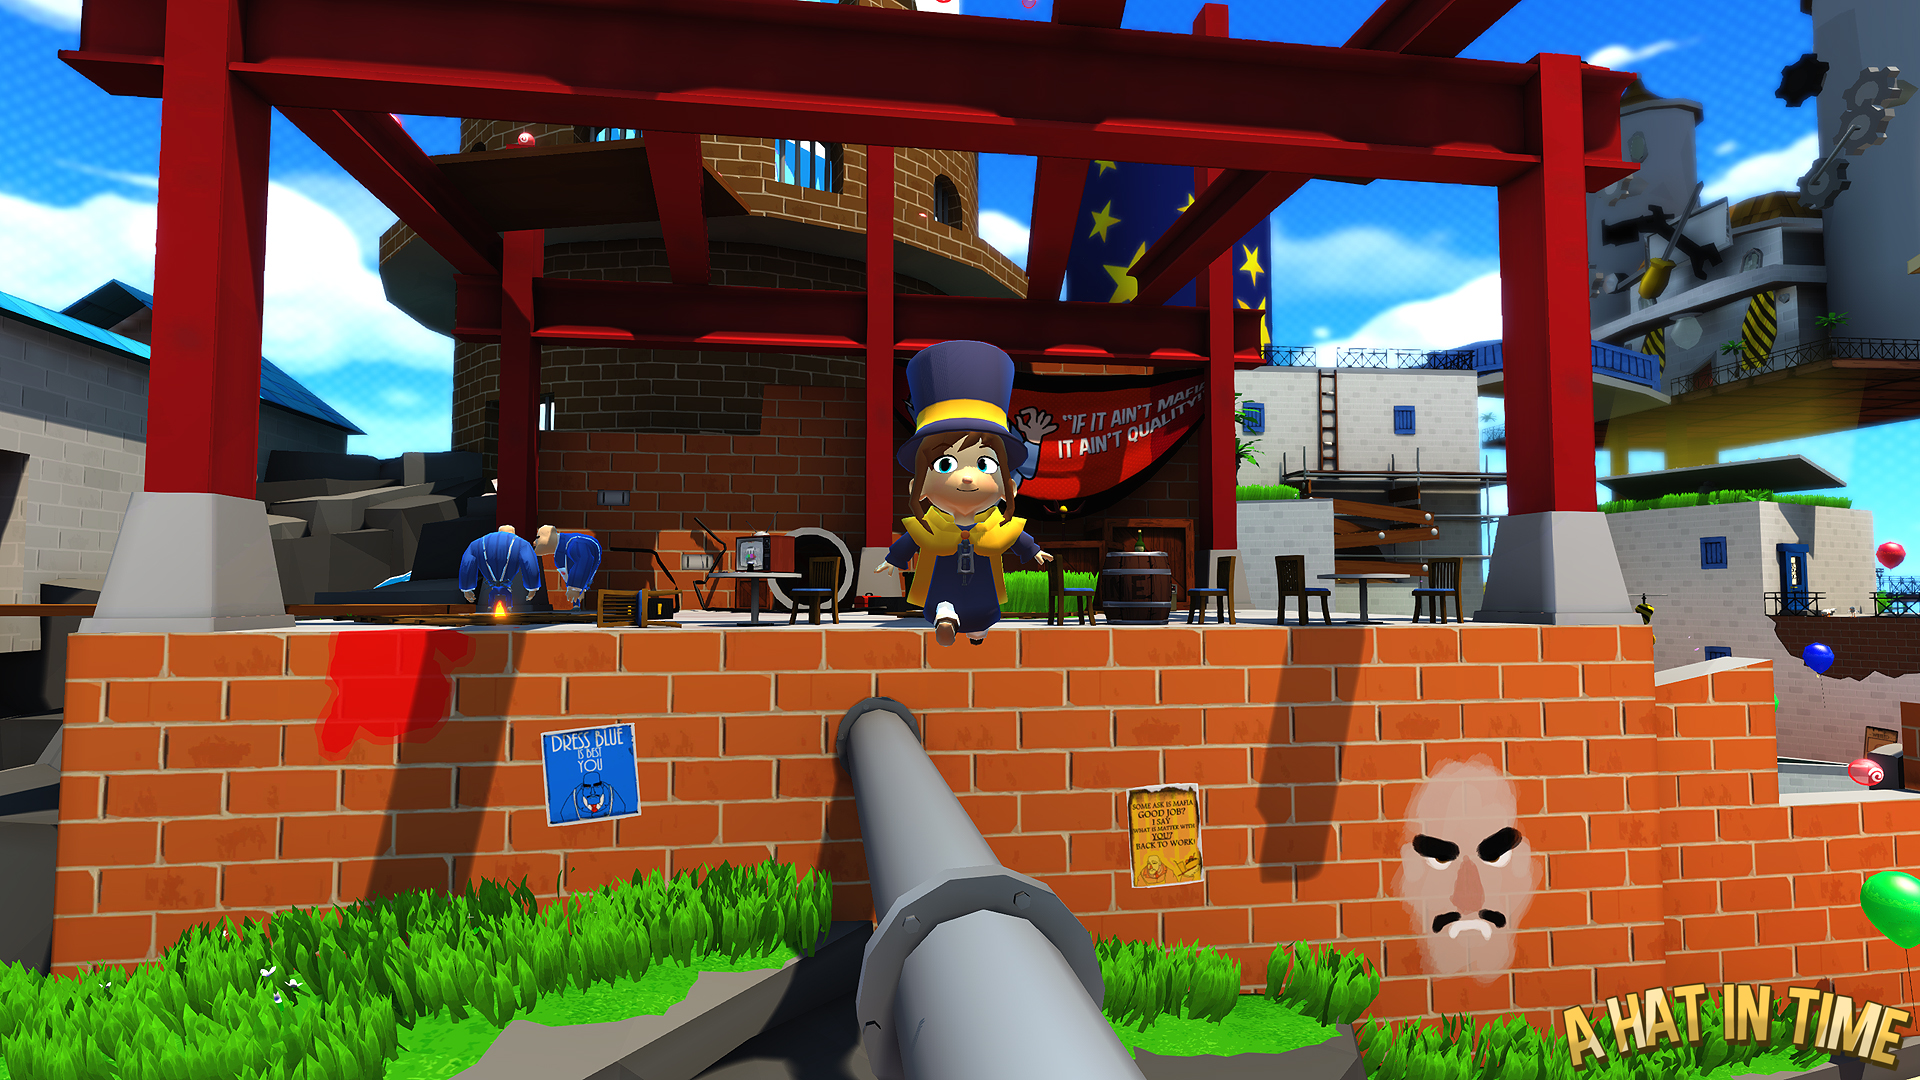 how to enable modding support a hat in time